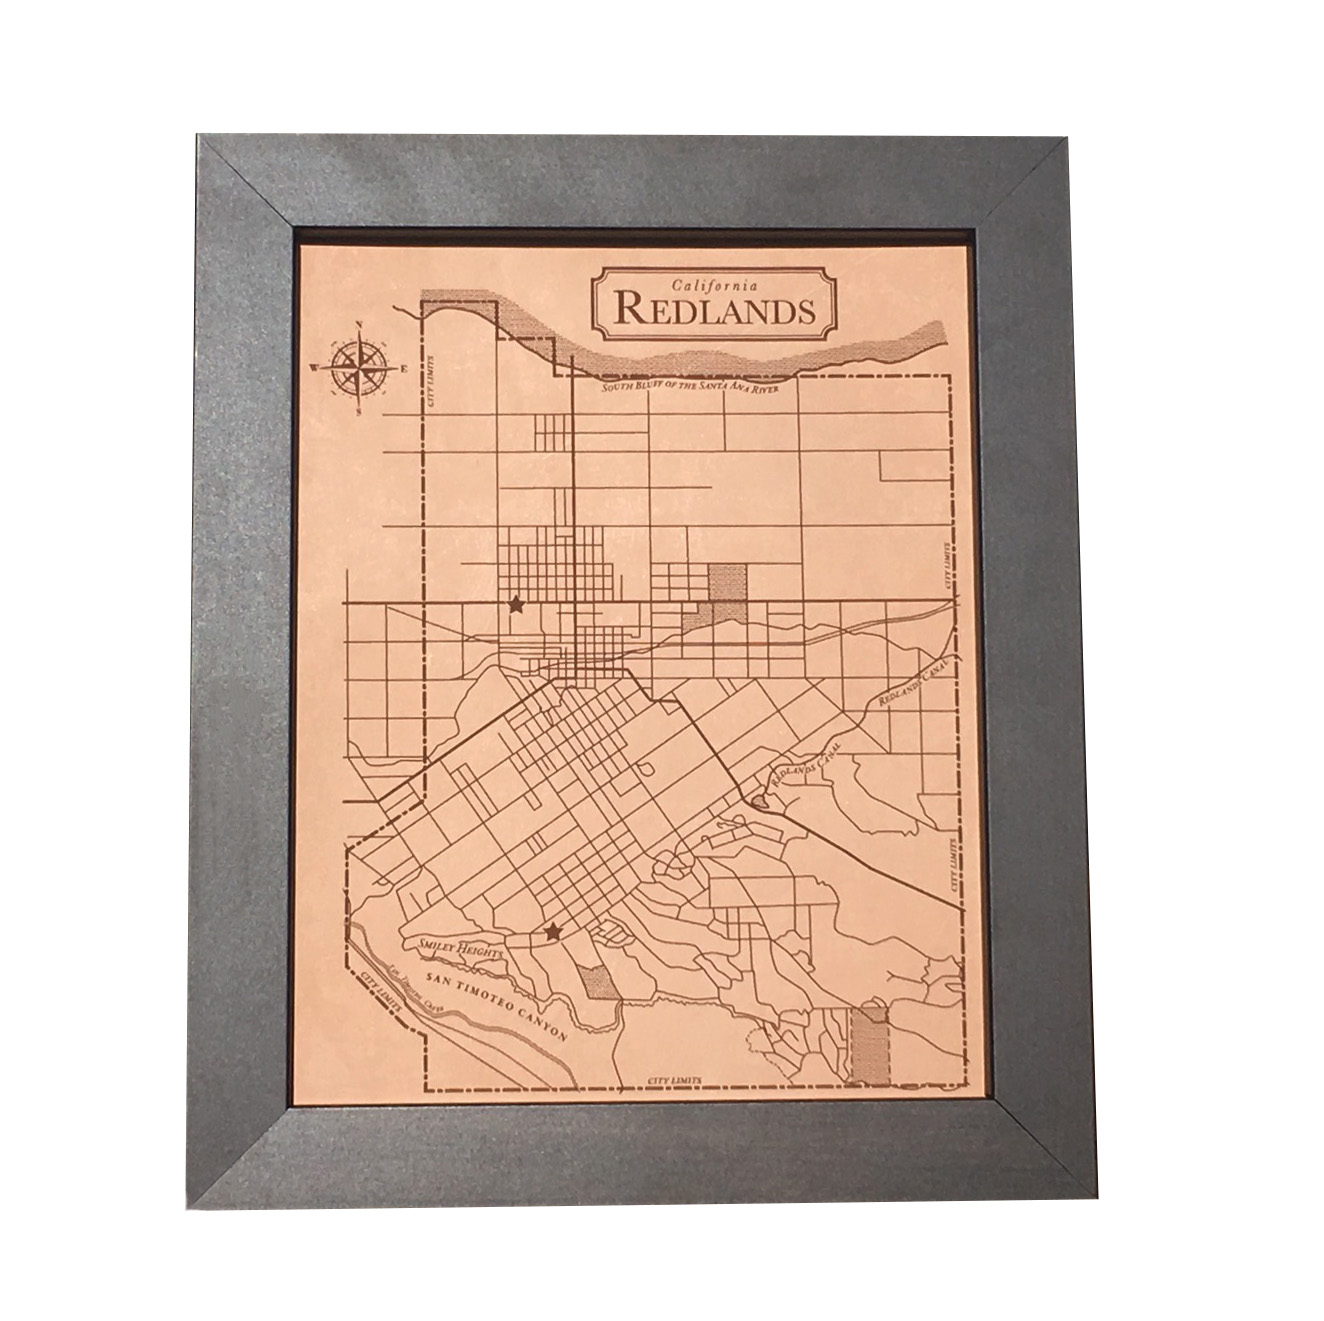 Redlands California Historic Map Engraved on Leather